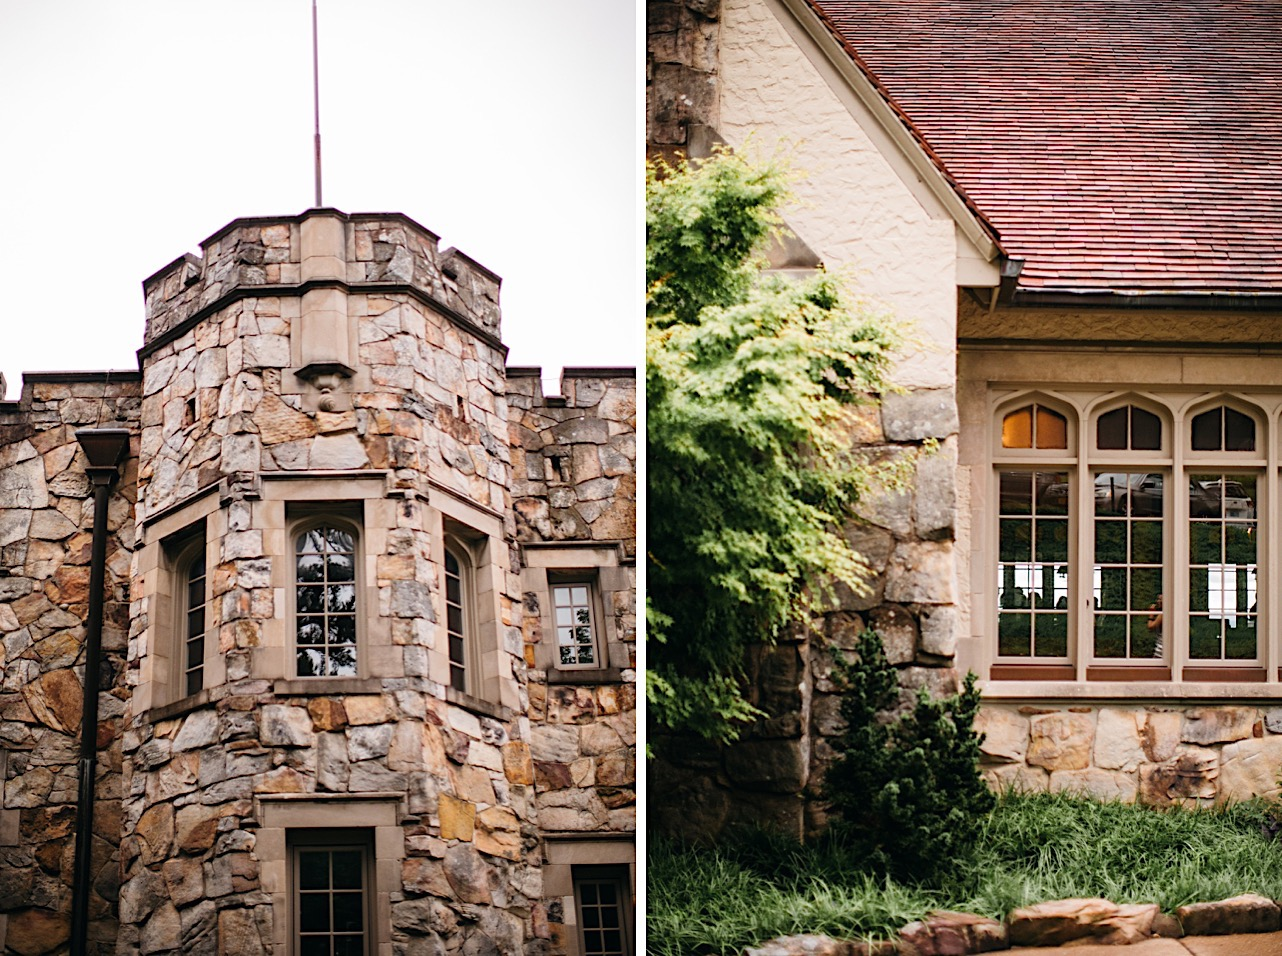 stone exterior of The Fairyland Club at Lookout Mountain Club near Chattanooga Tennessee